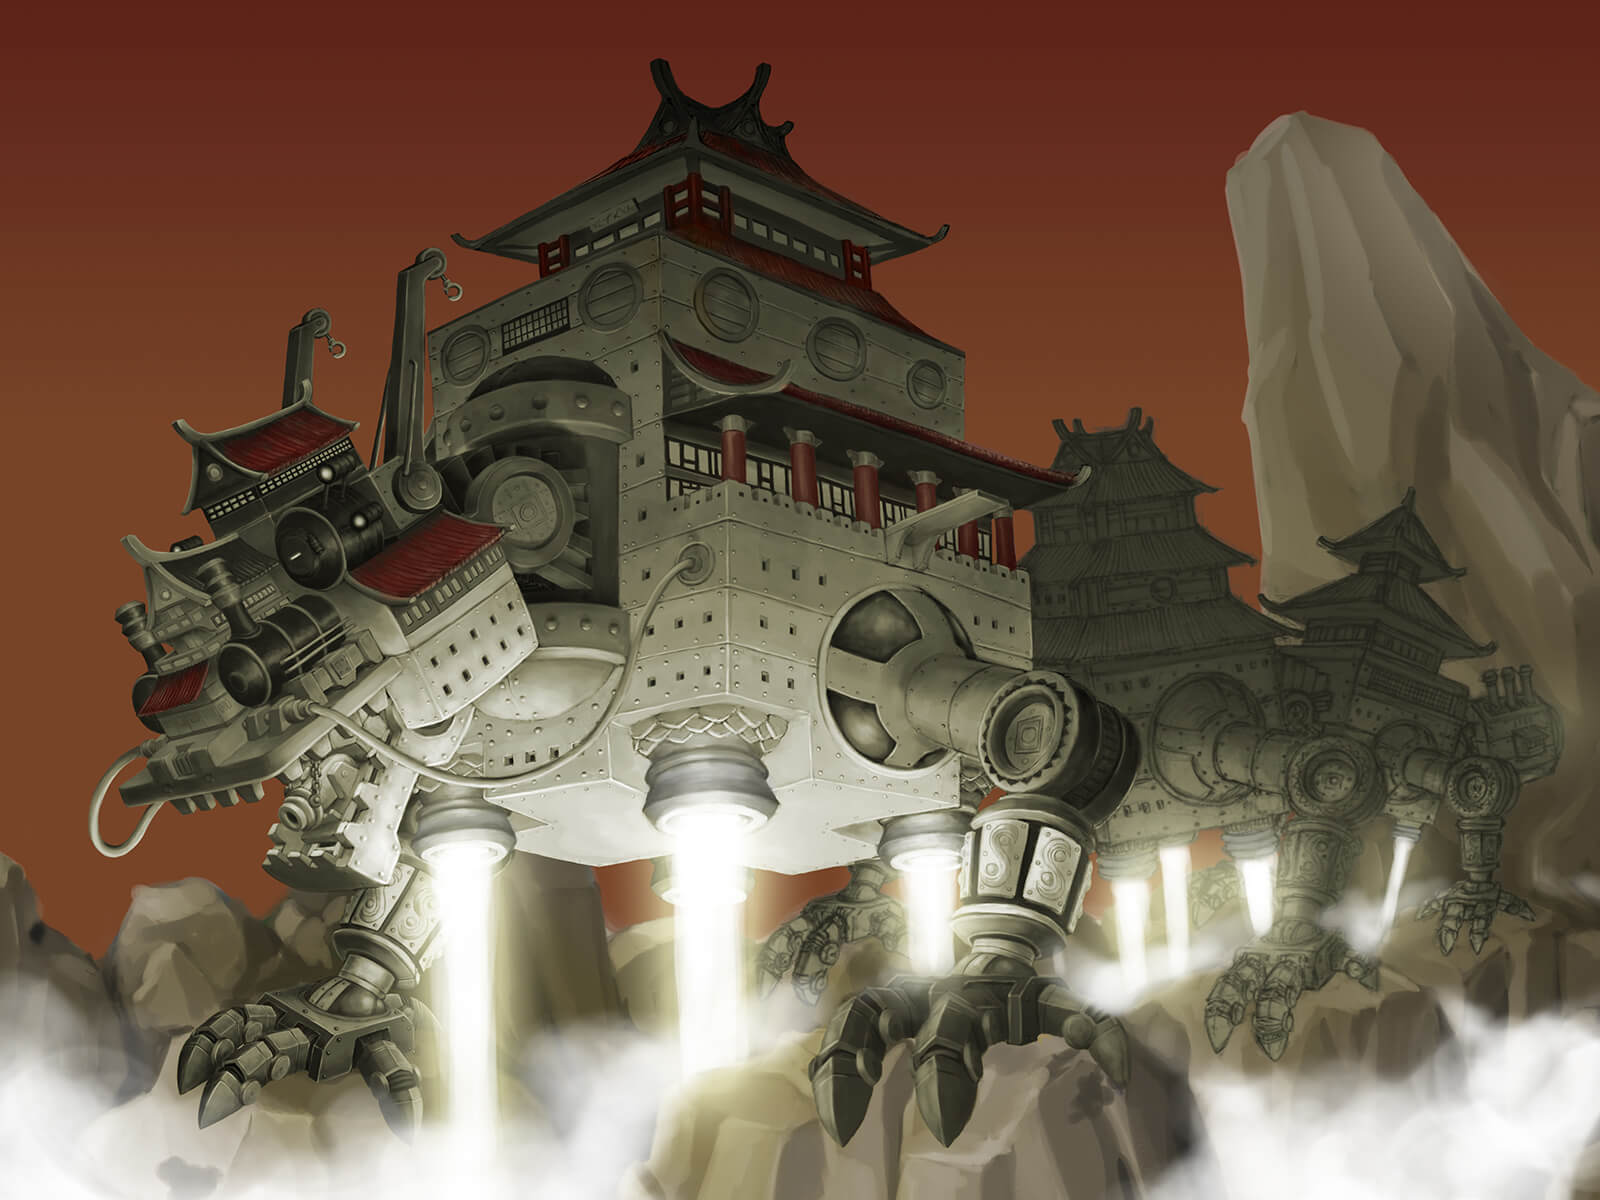 A massive steampunk-style metal dragon made up of interconnected pagoda-style fortresses crawls across a mountain range.